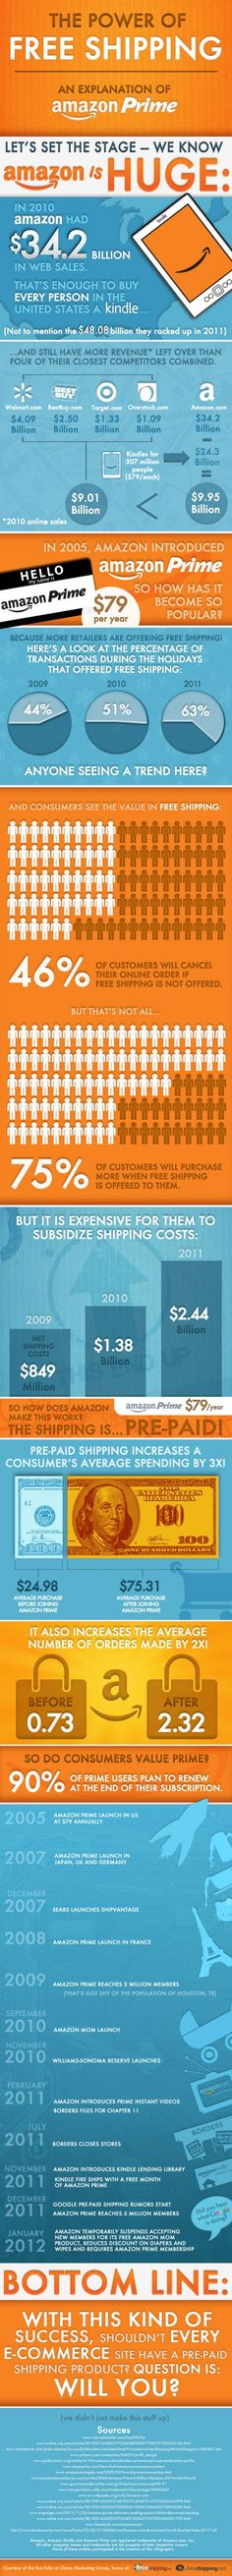 The Power of Free Shipping - Amazon Prime ...